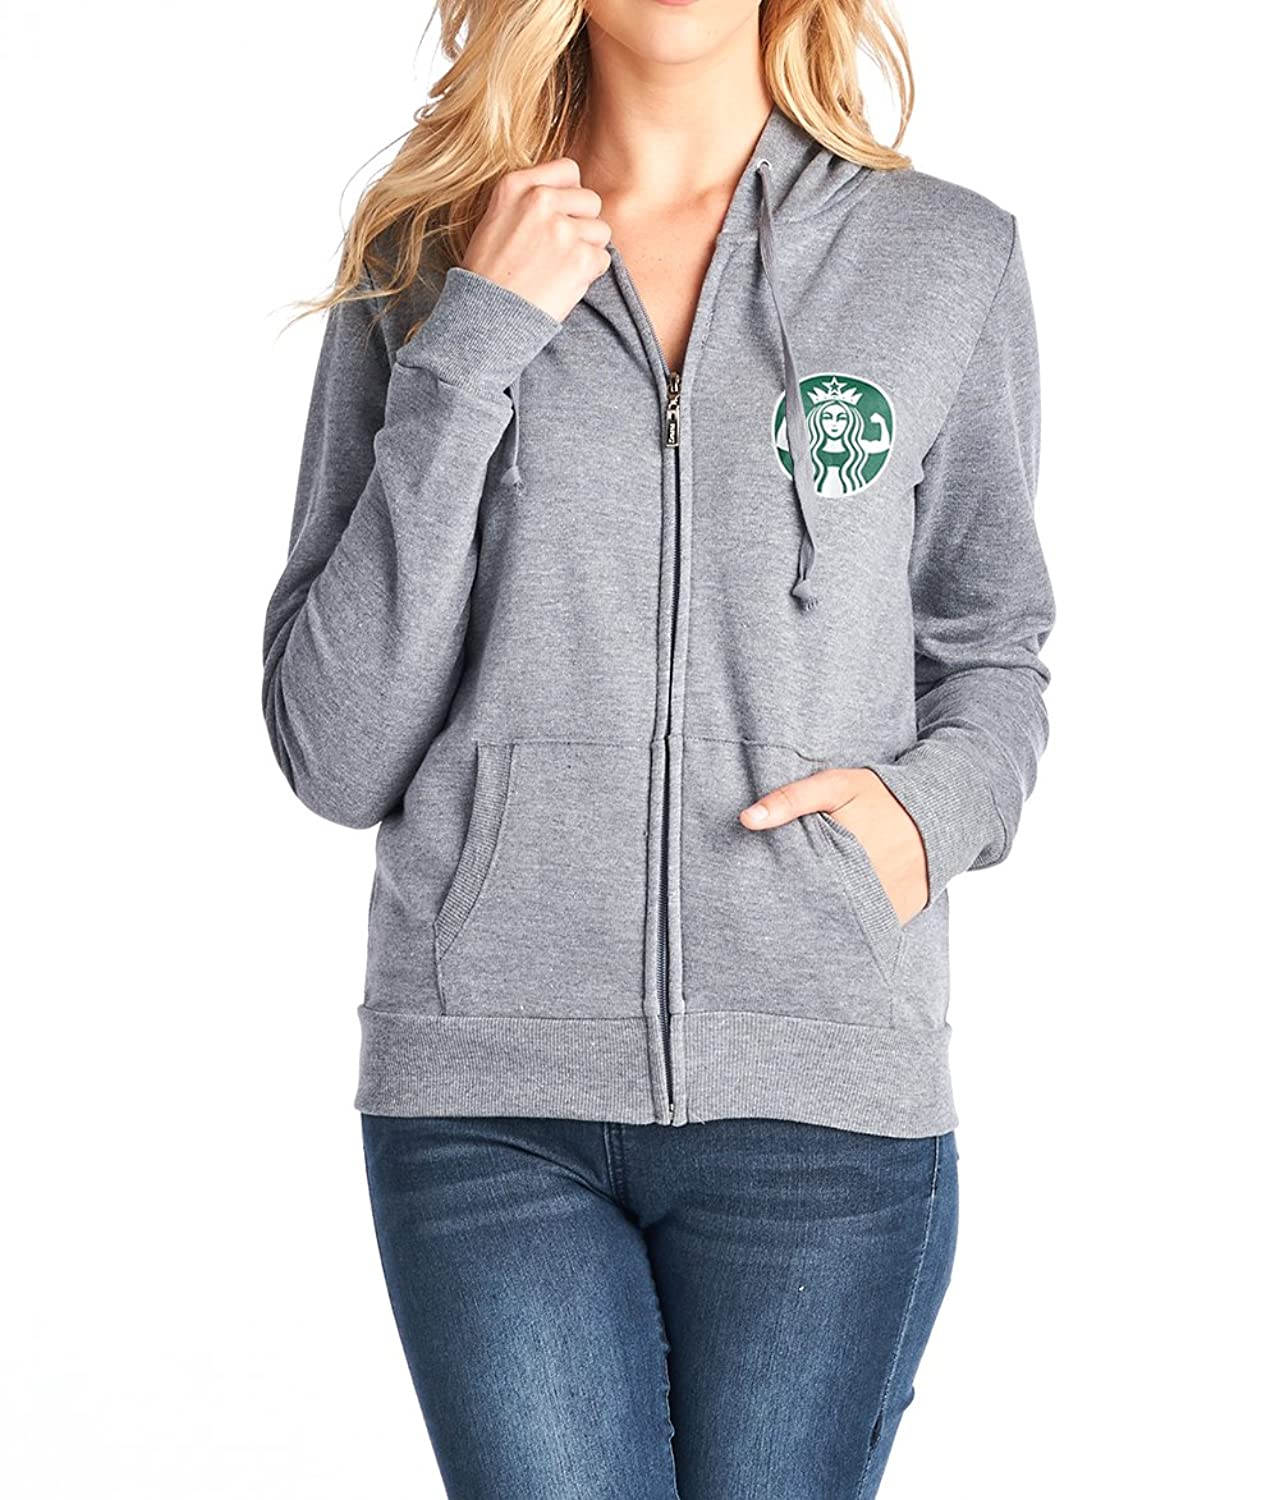 Tough Cookie's Women's Zipper Sweatshirt With Small Starbucks Parody Print Hood